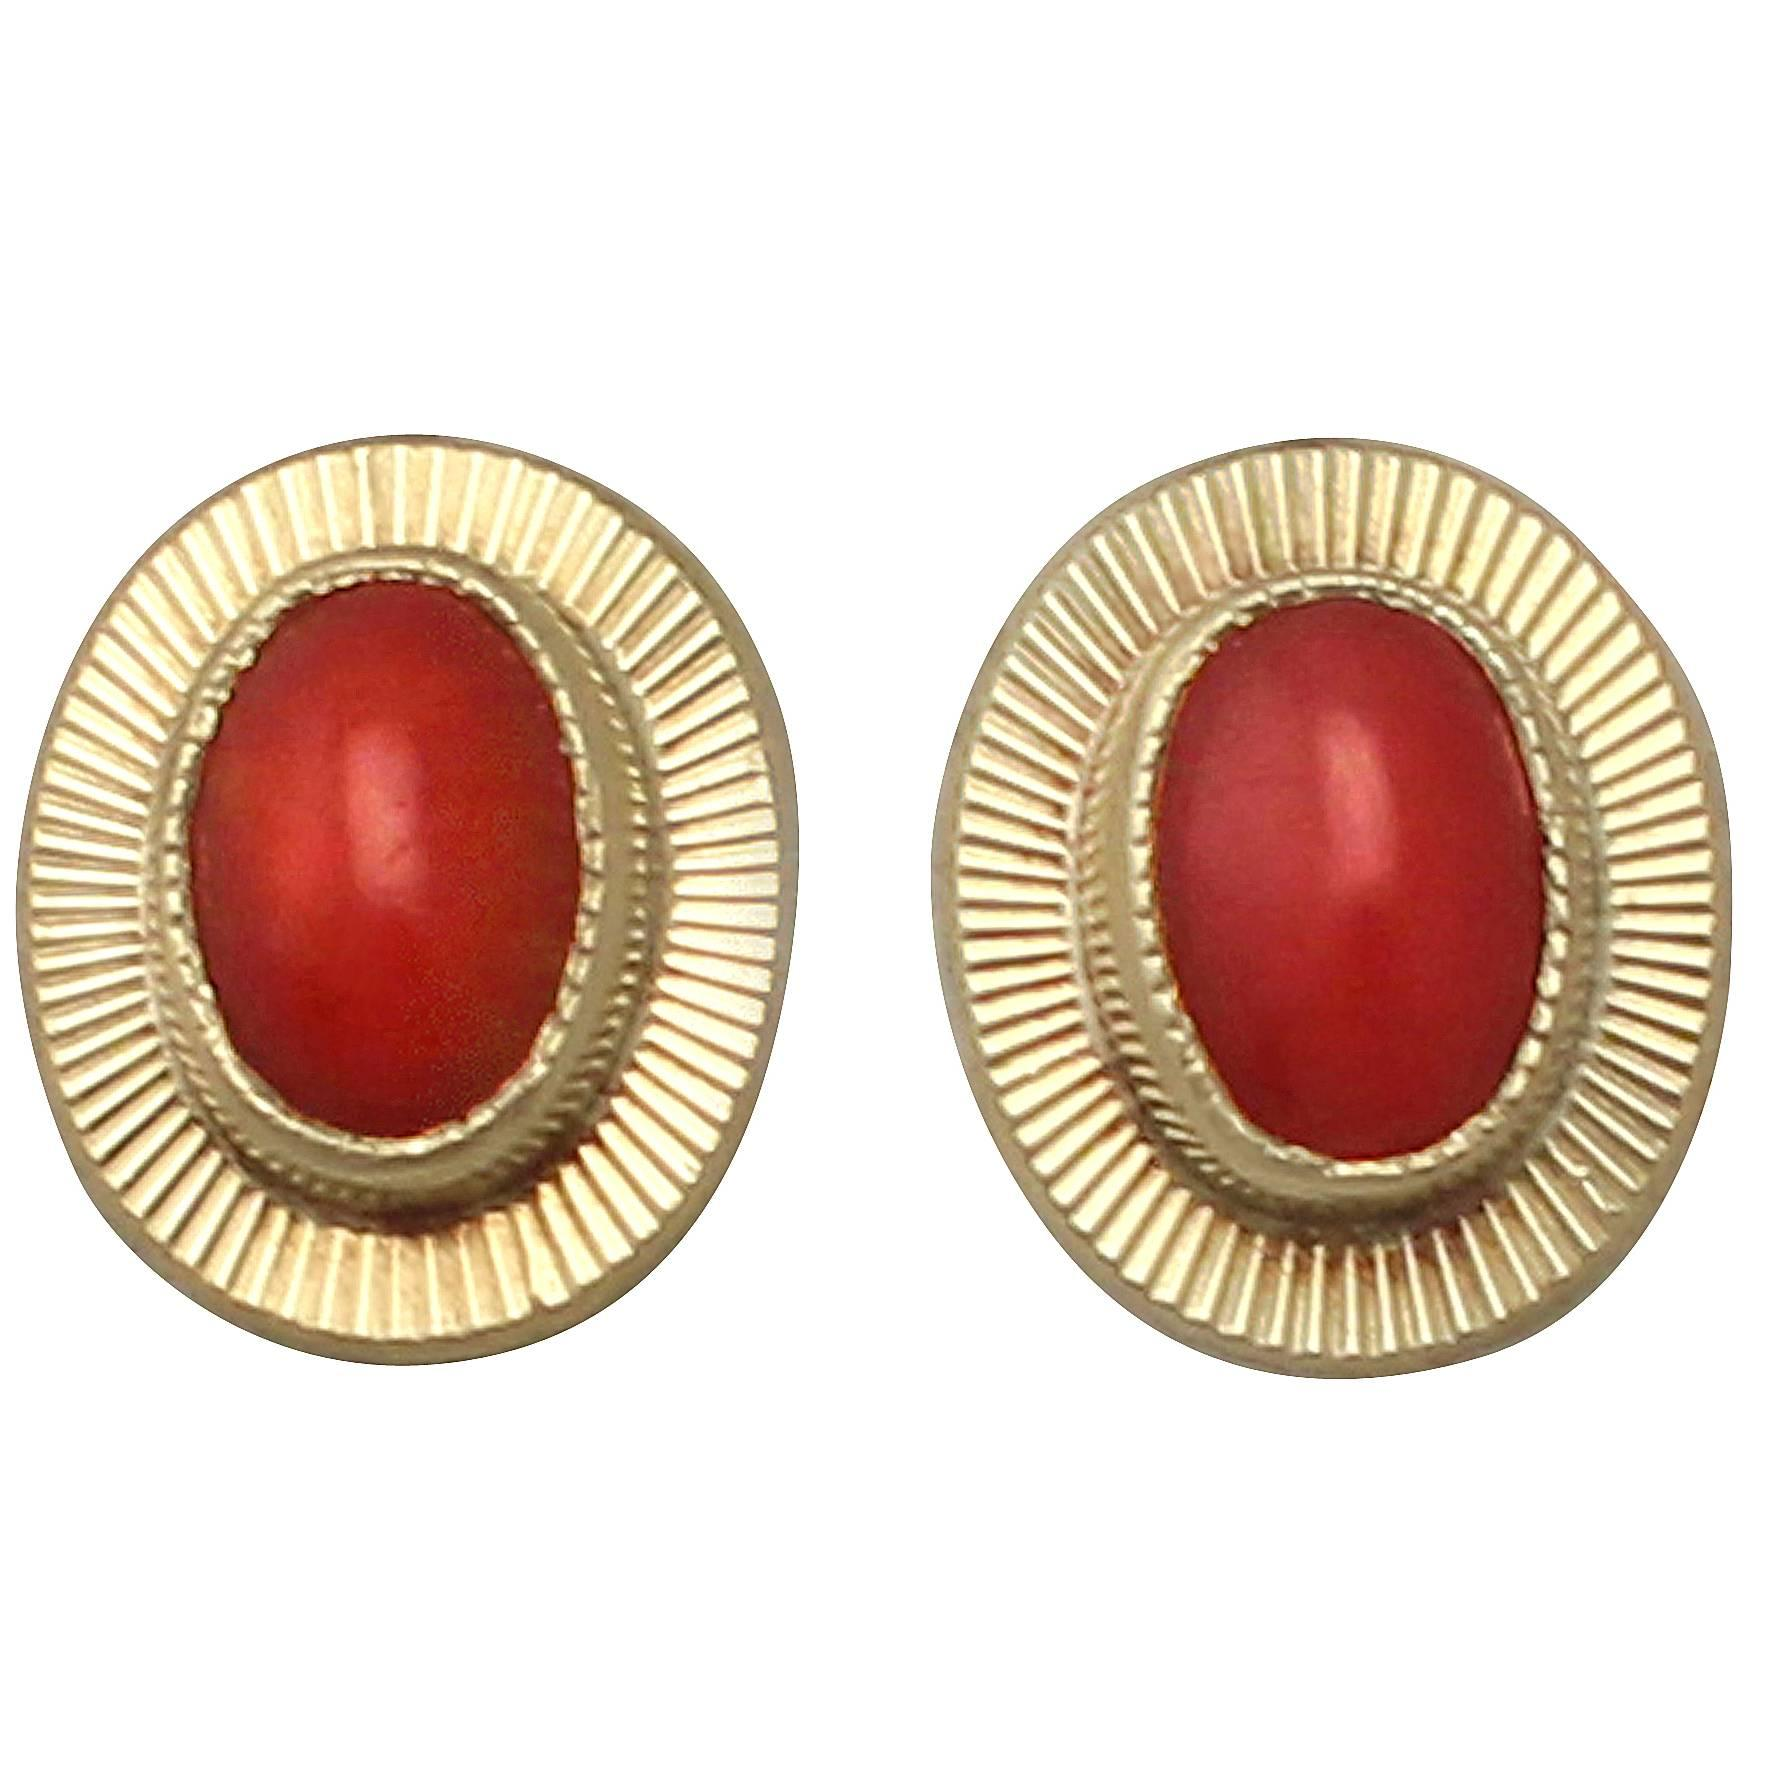 jewels products red plated accessories jhumka apparel studded jewellery panash earrings stone gold